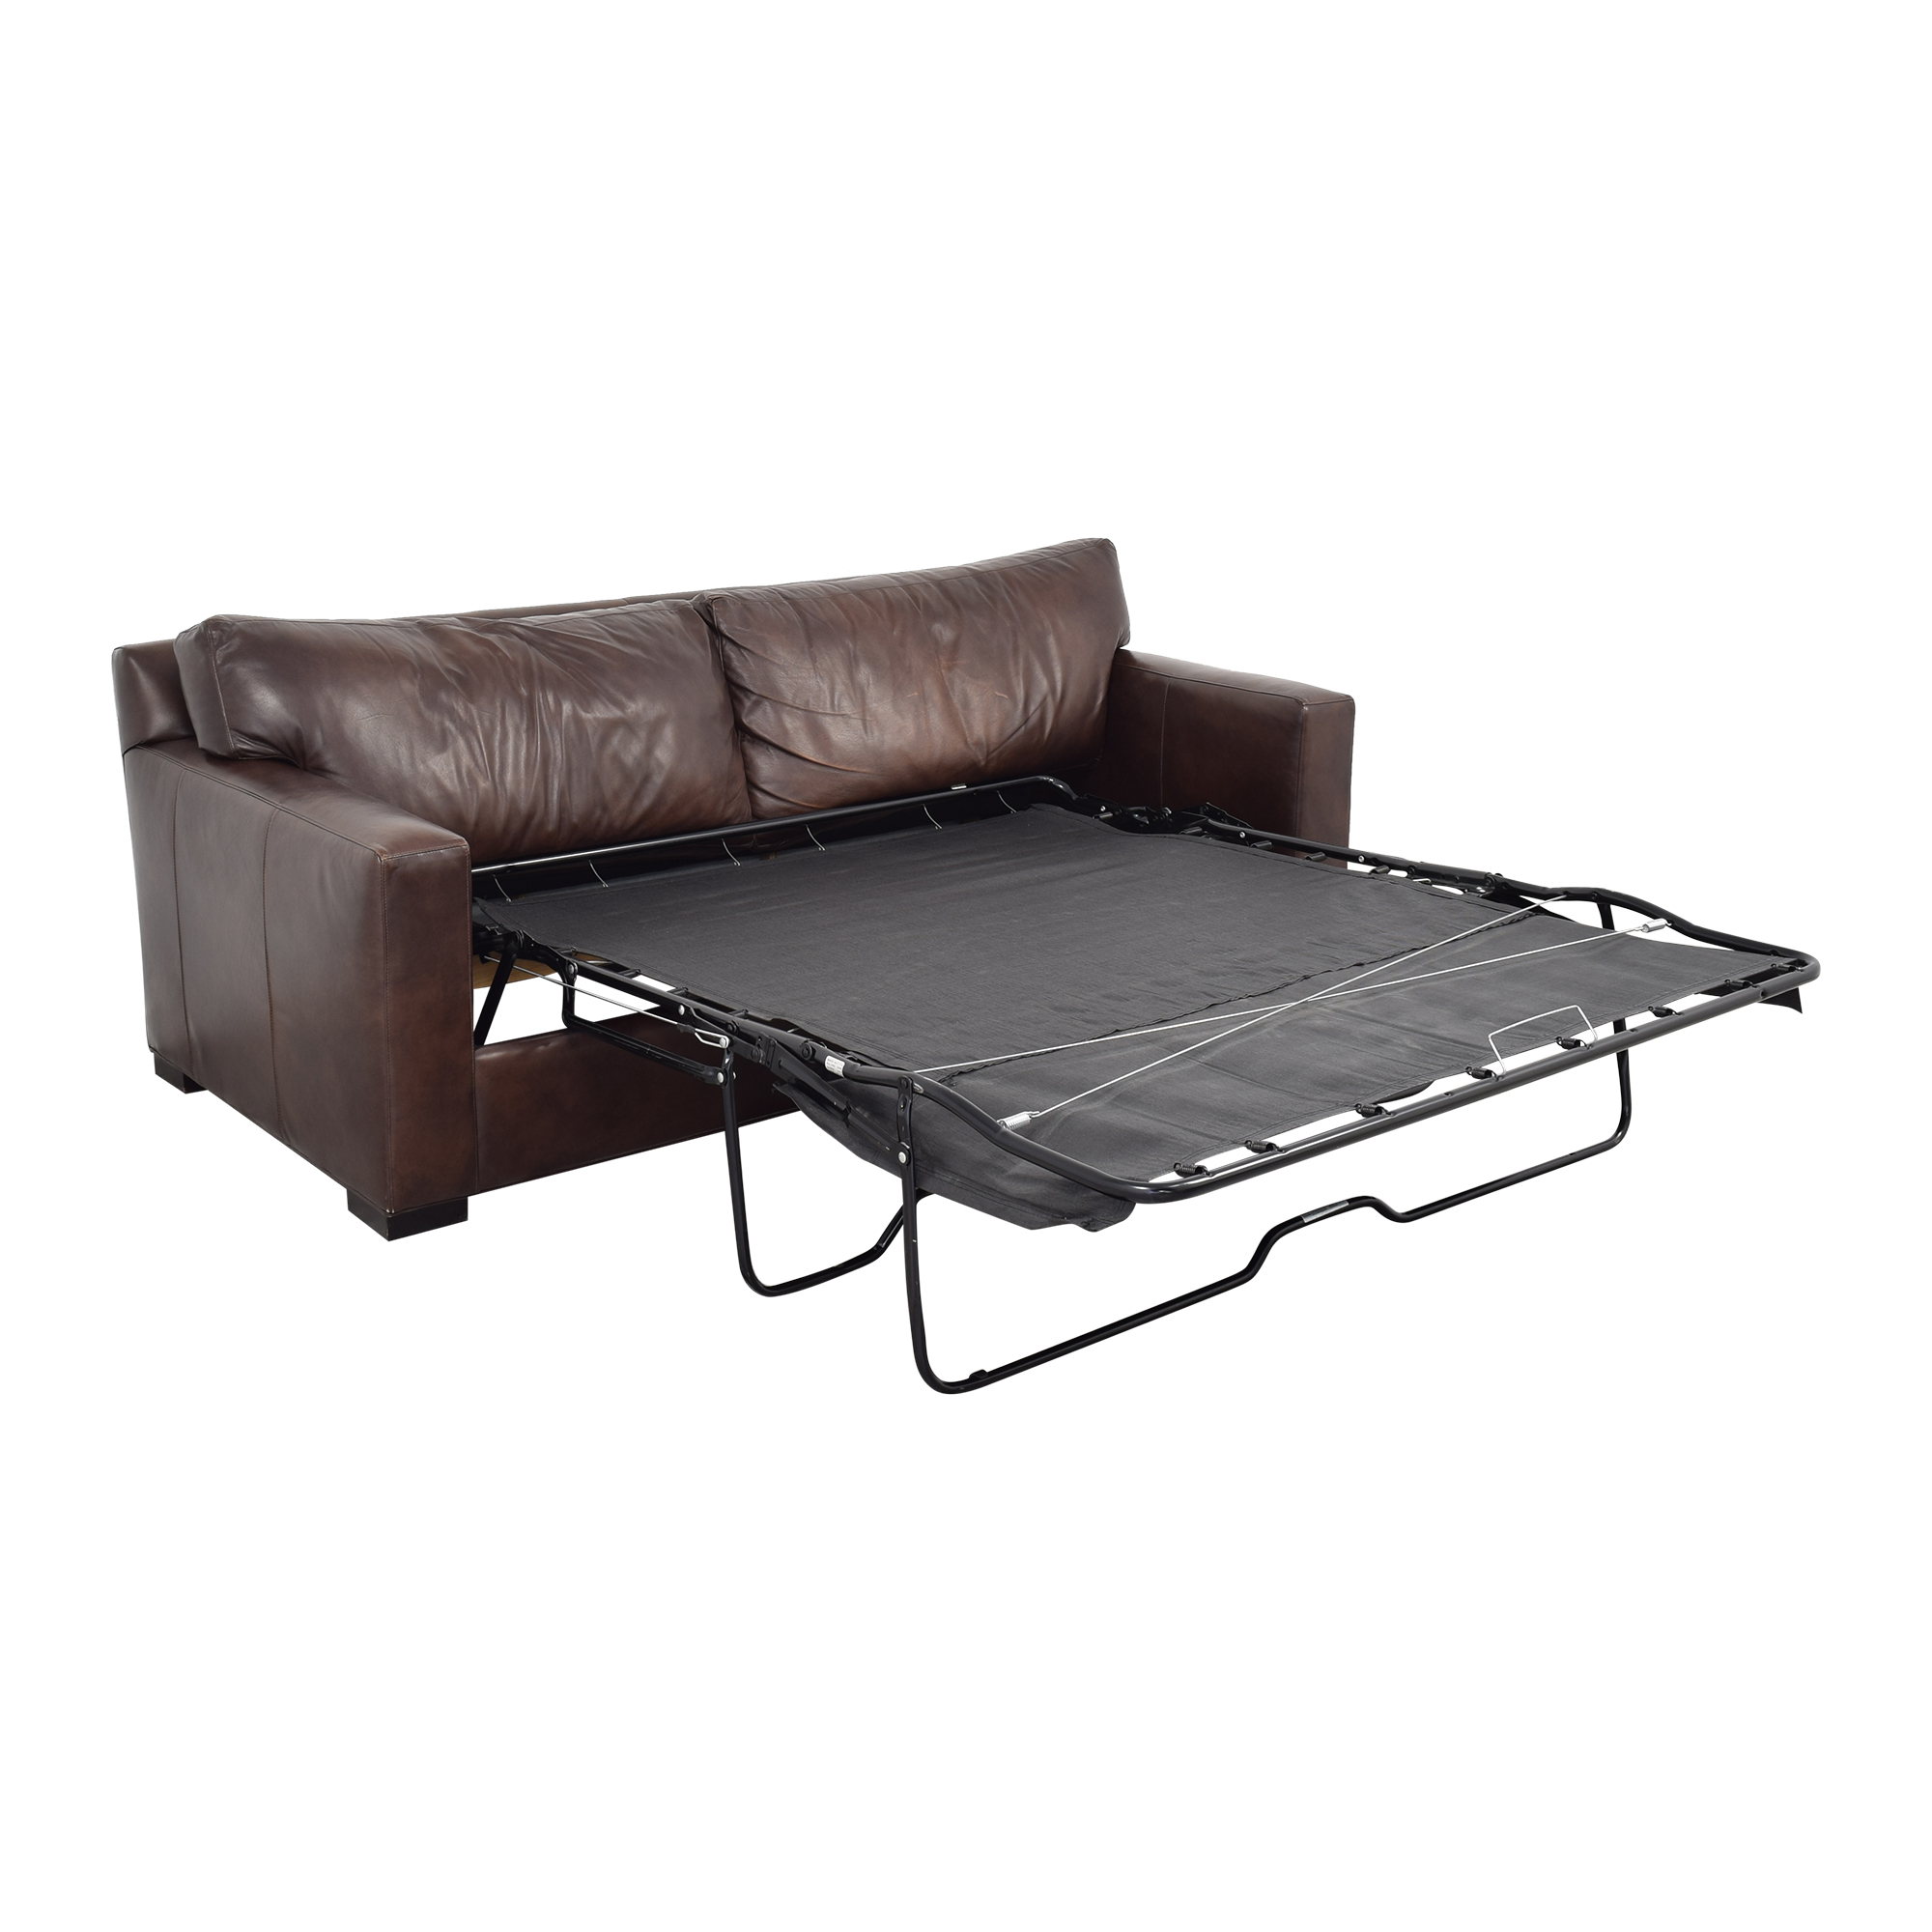 Crate & Barrel Axis II Leather Two Seat Queen Sleeper Sofa / Sofa Beds